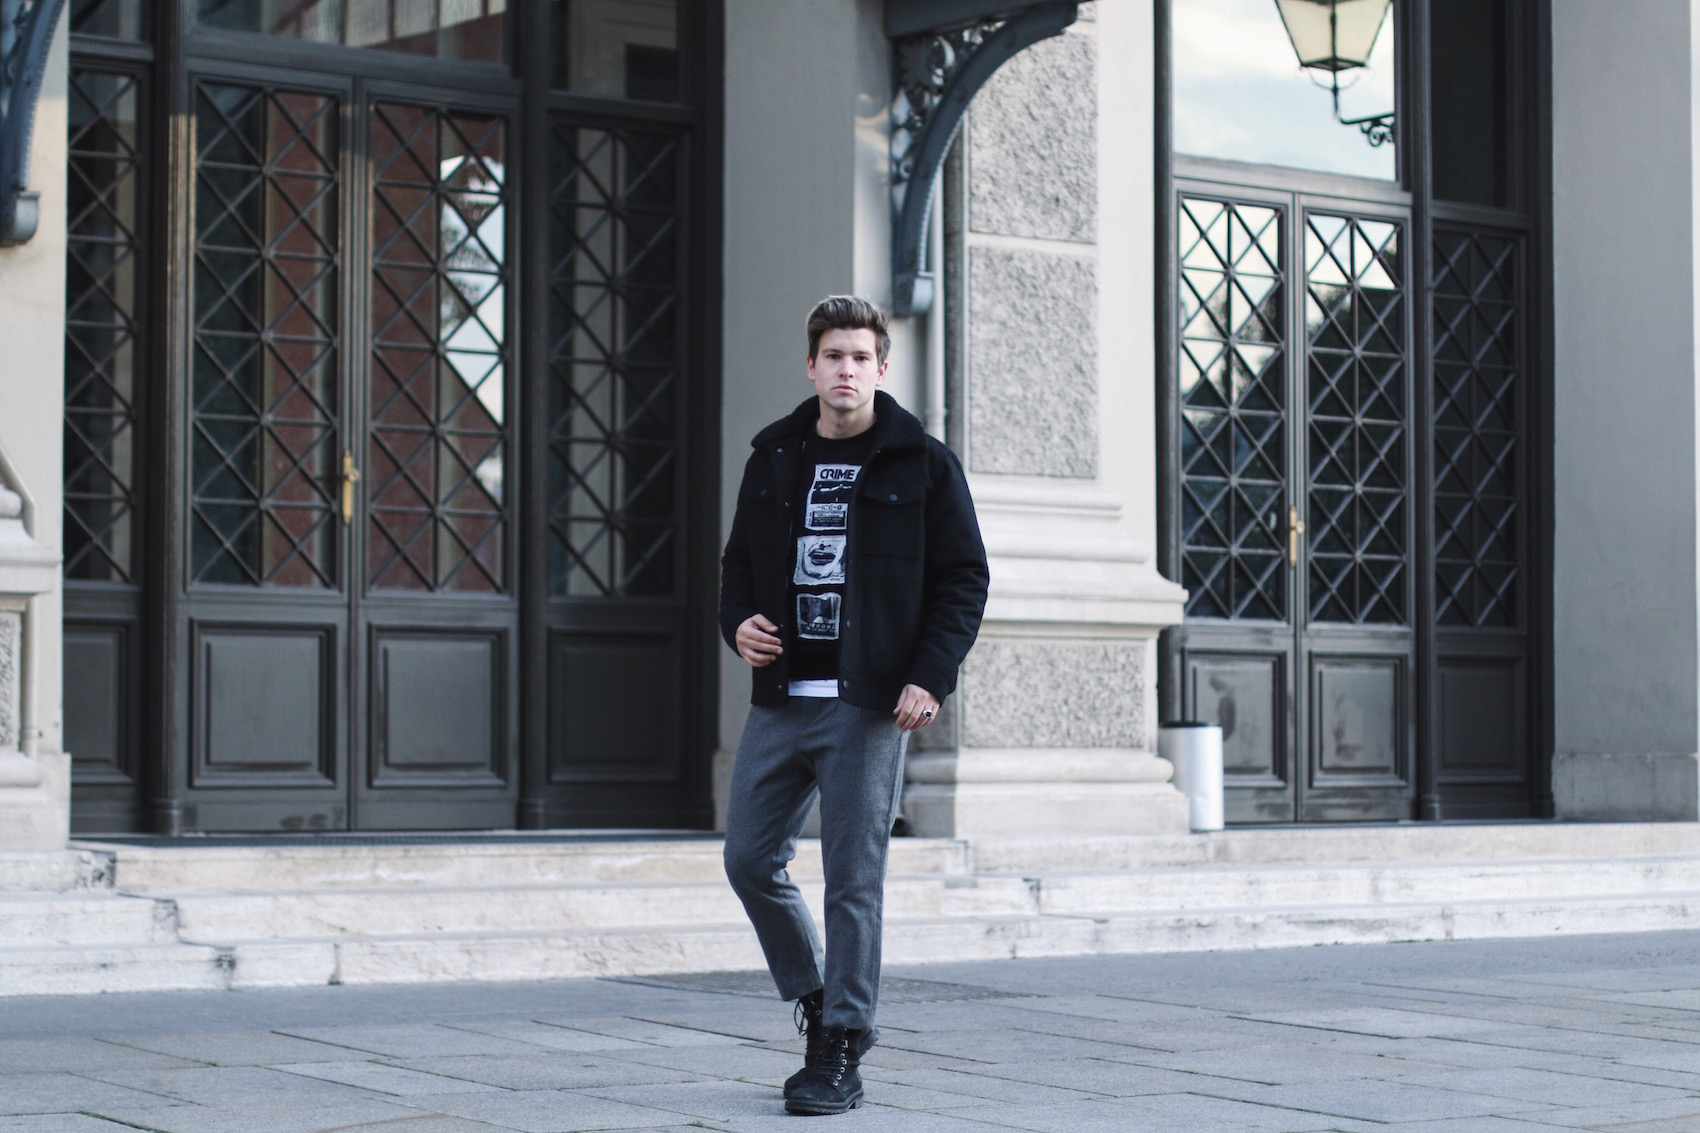 Weekday Jeans Winter Outfit_Streetstyle Herrenmode_Meanwhile in Awesometown_Männnerblog_Menswear_Lifestyleblog_Maleblogger_Maleinfluencer7